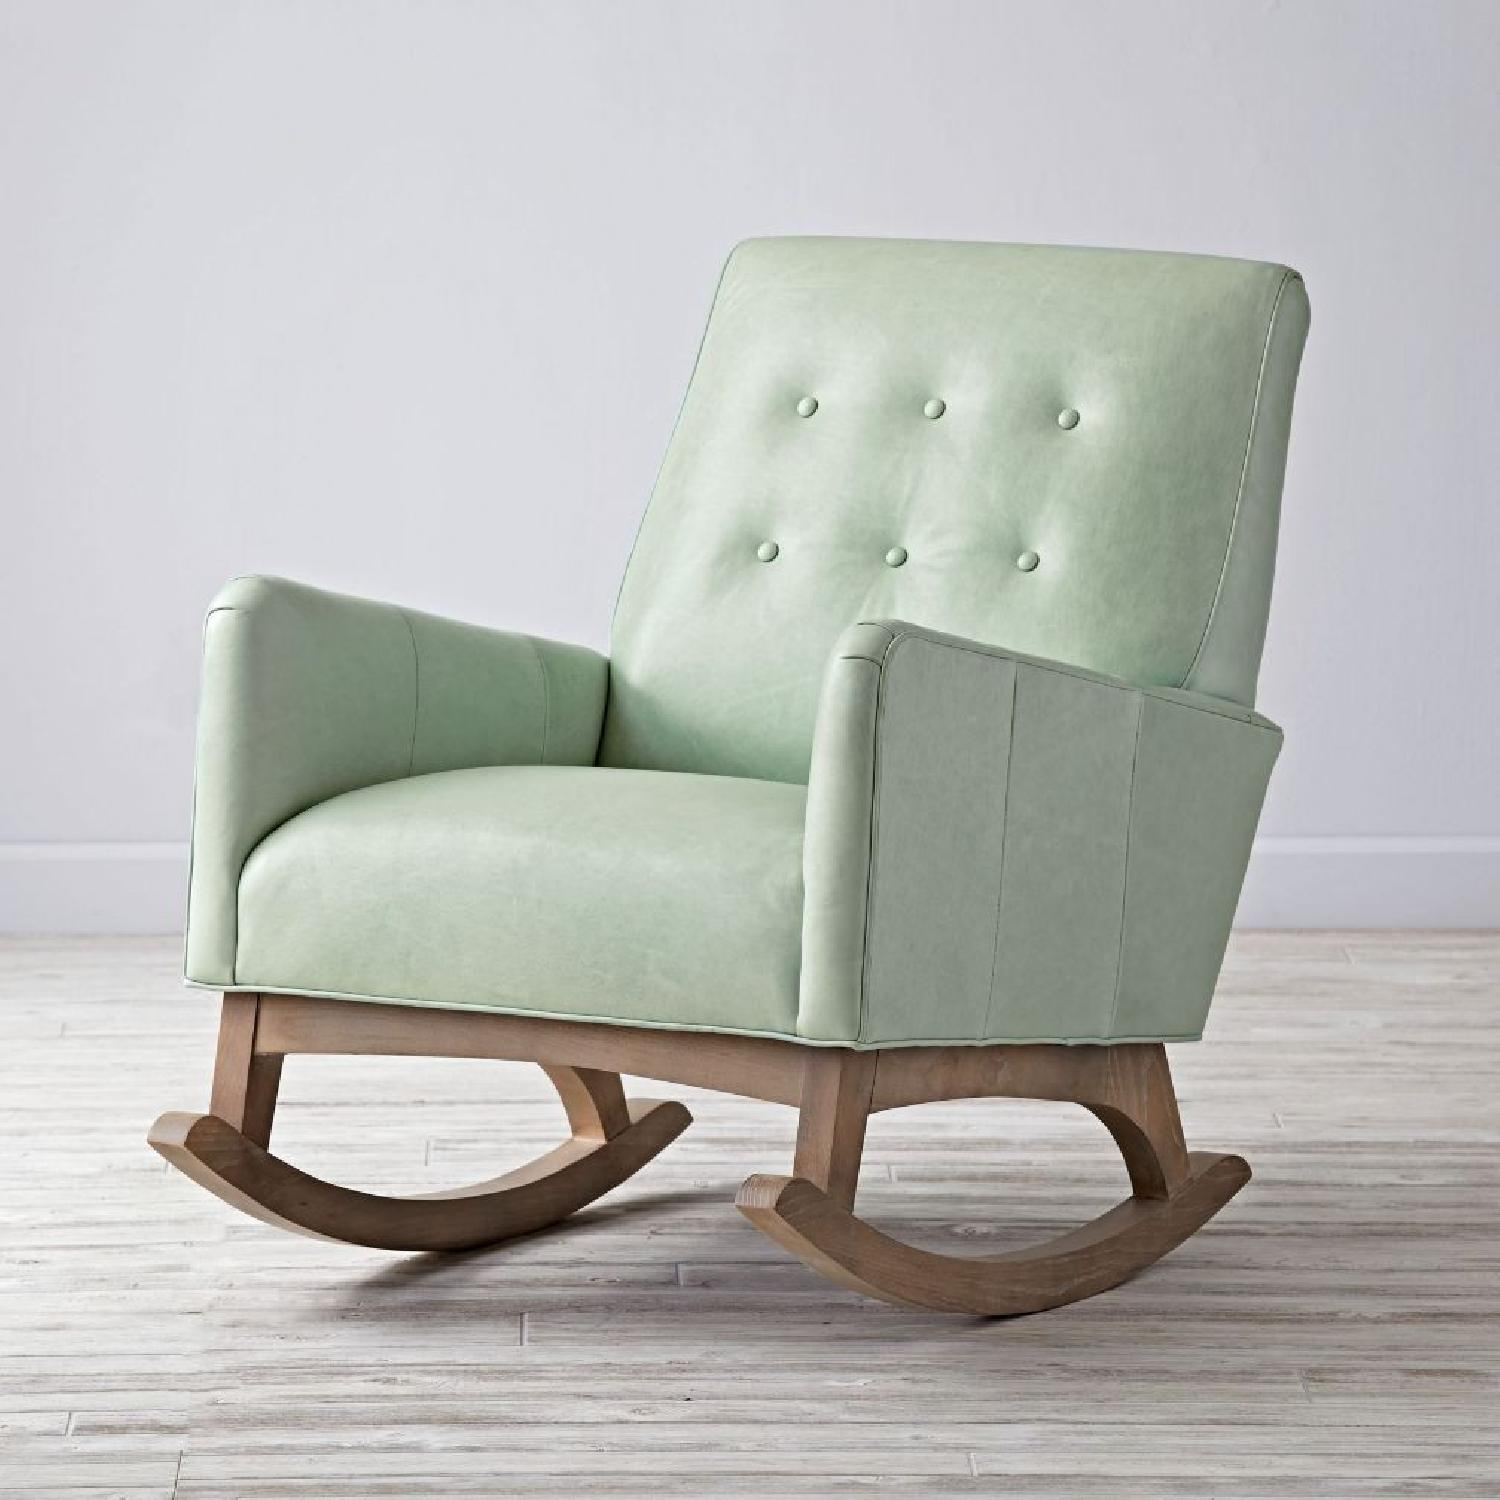 Crate & Barrel Everly Sage Leather Rocking Chair - image-0